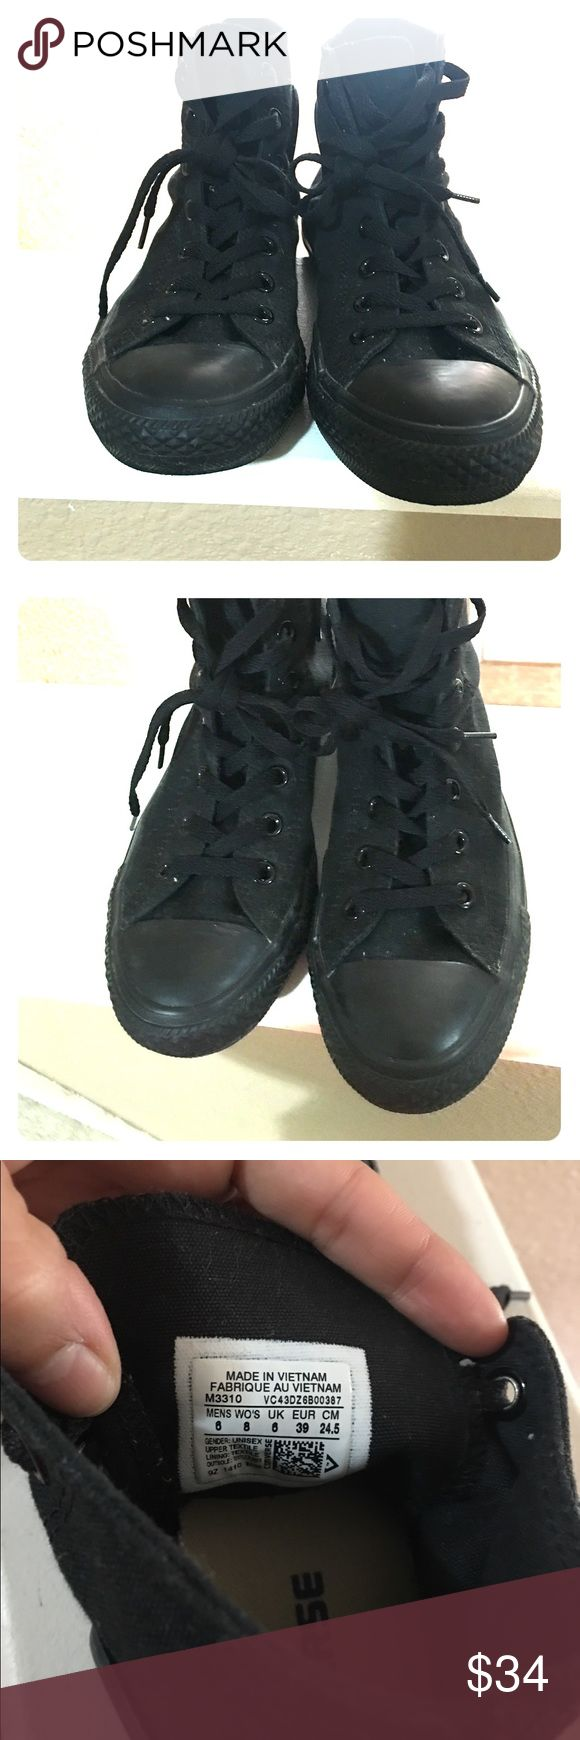 Converse Hugh top monochrome sneakers black Excellent quality high top converse sneakers. No wearing on toes or outer cosmetic appearance. Bottom in good condition with some slight wearing. The outer shoe is canvas, so may need to lint roll to keep clean due to black color. Converse Shoes Sneakers